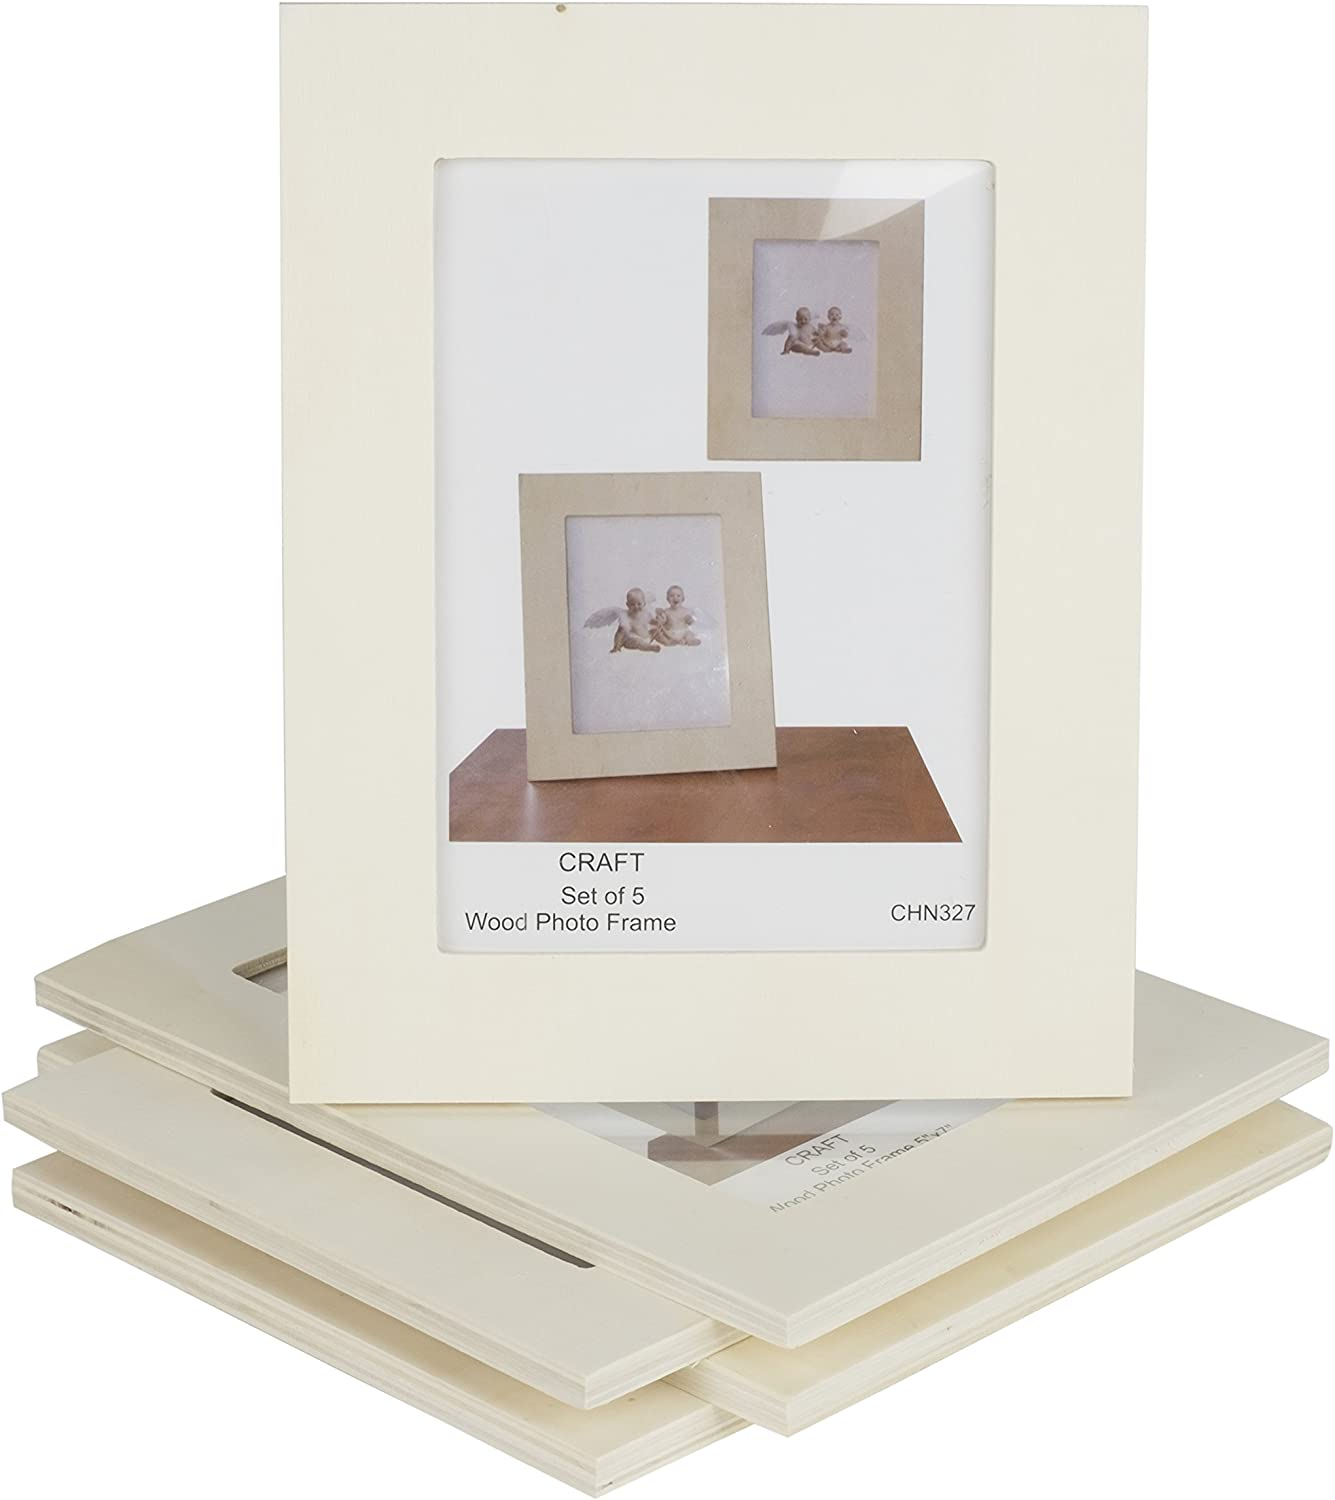 Wallniture Craft Picture Frames 4x6 Unfinished Wood for Kids Arts and Crafts for Adults Projects Set of 5